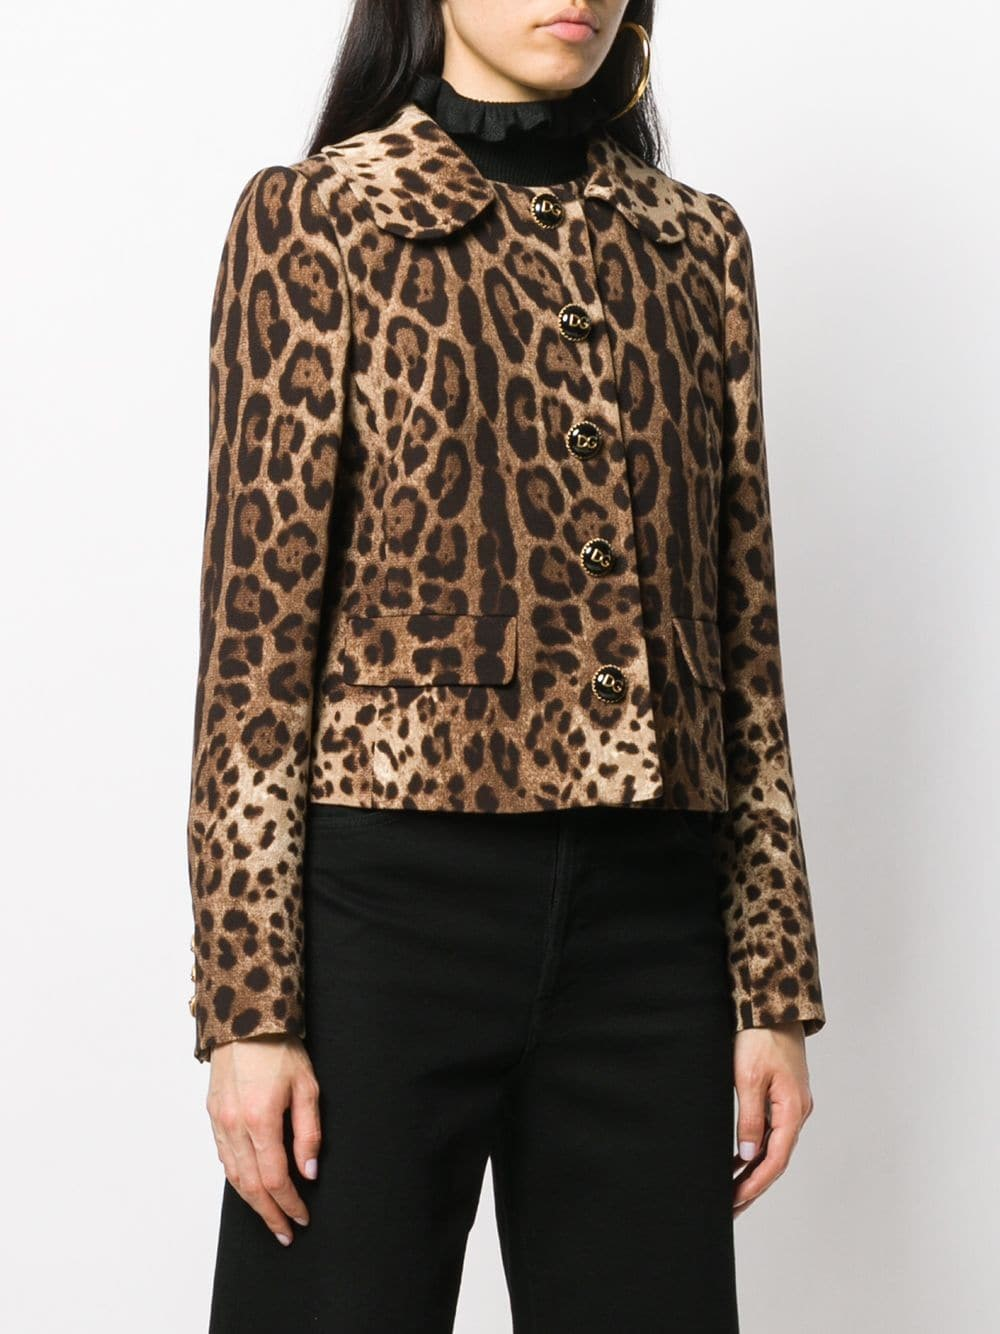 reputable site d35c6 aaa18 GIACCA ANIMALIER